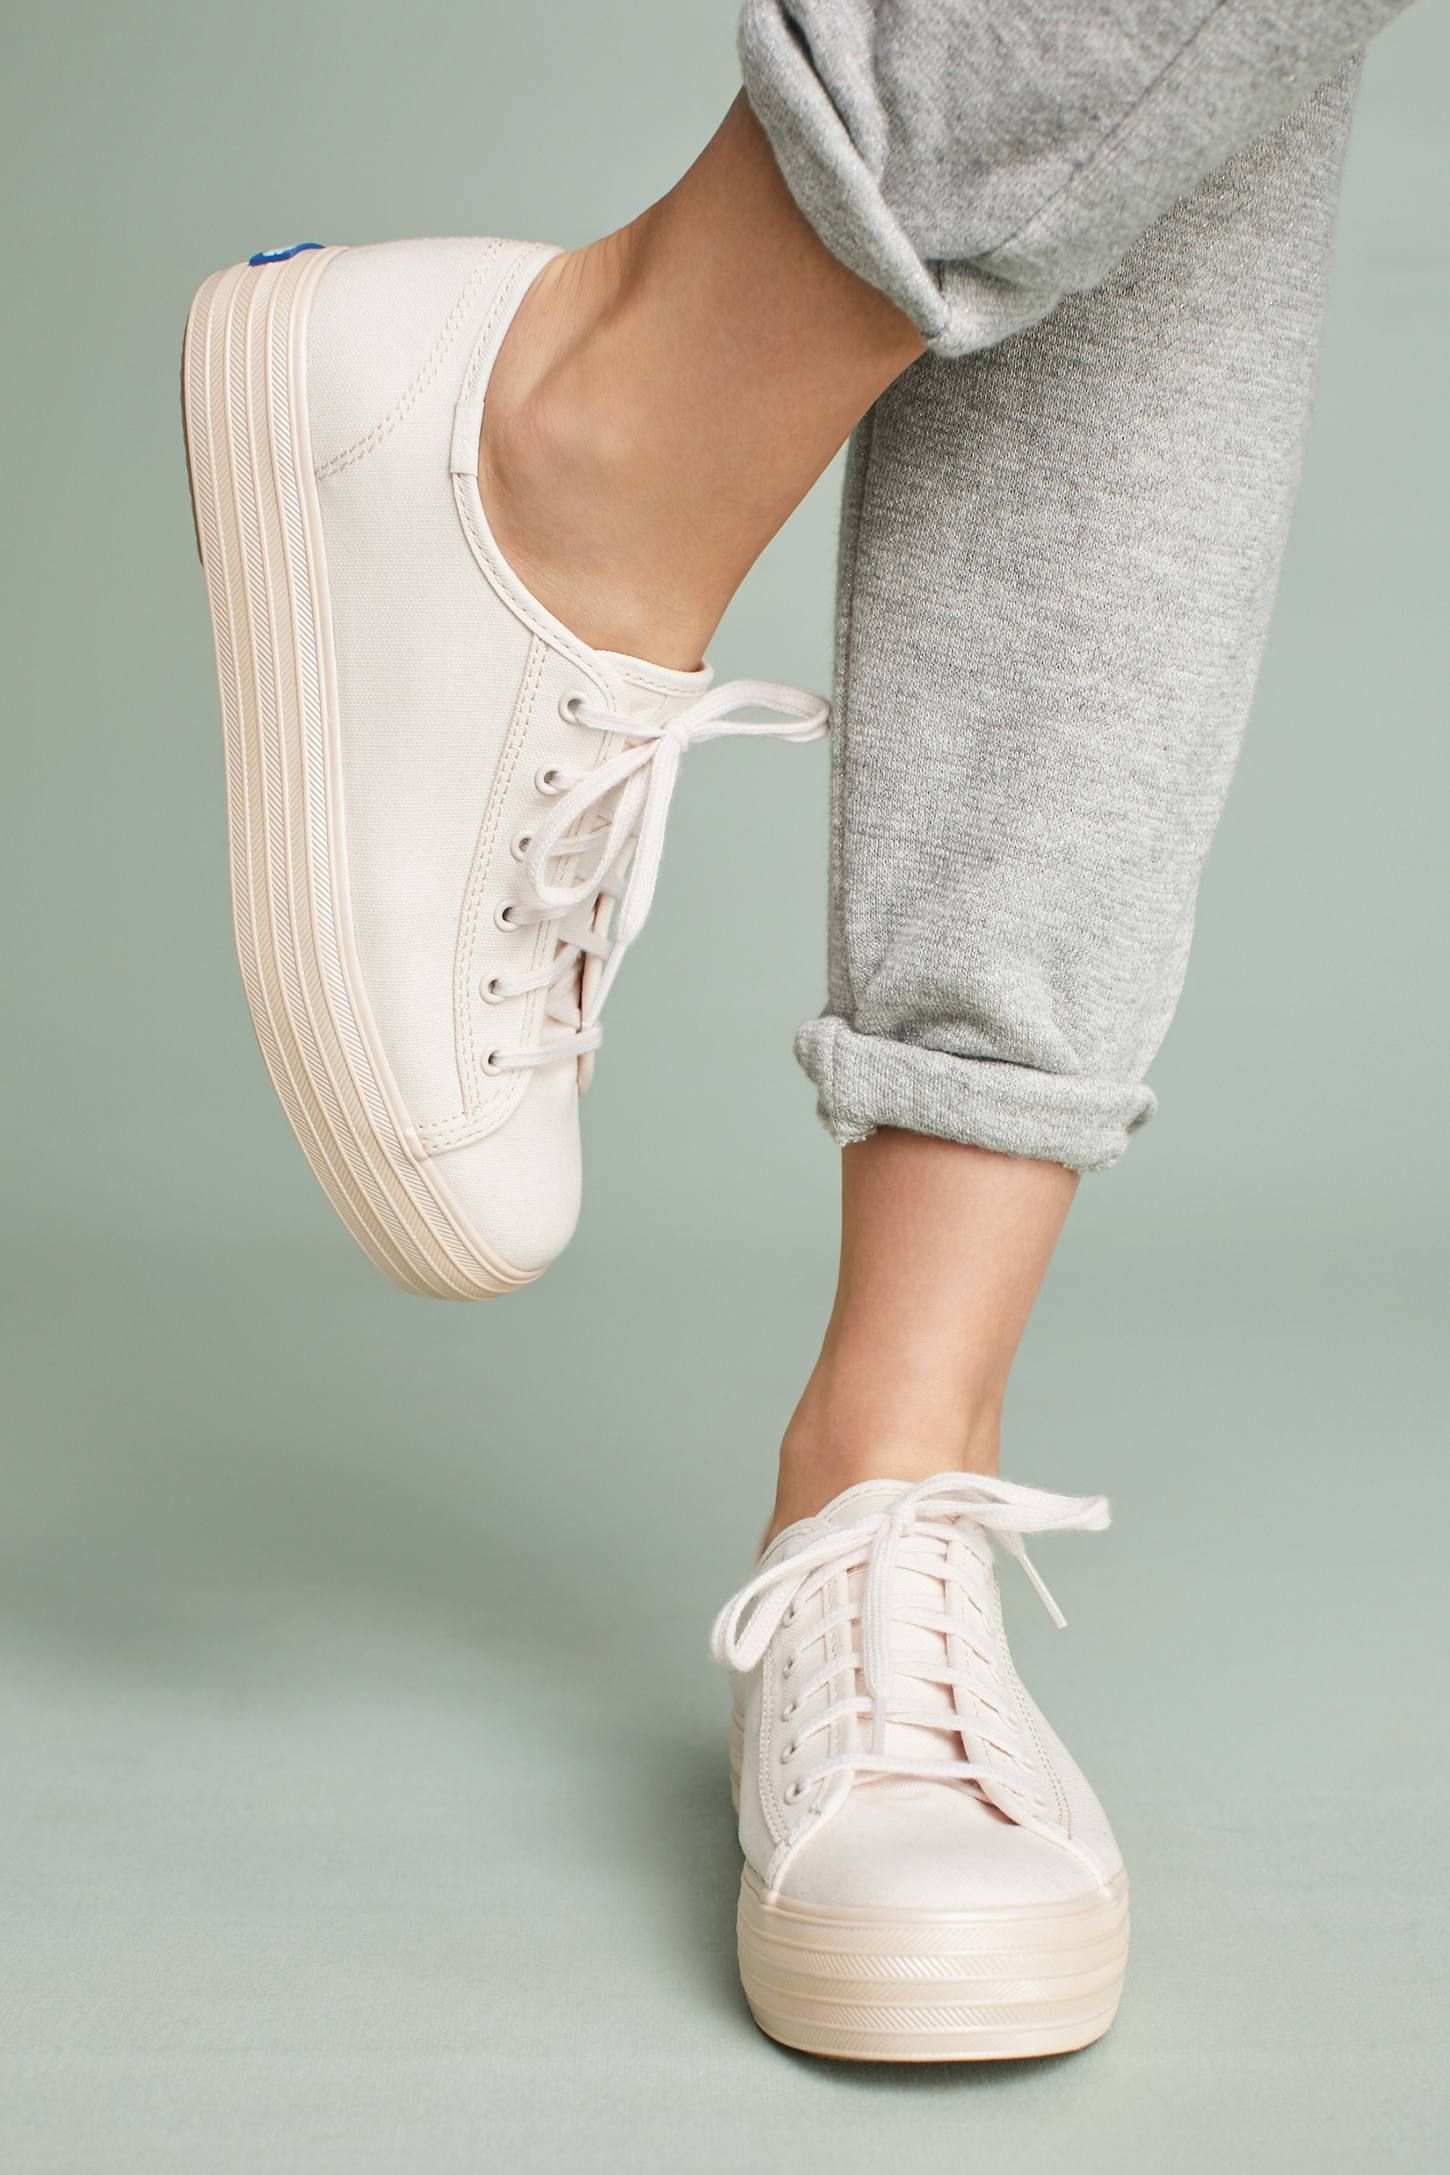 6f320a8c3dae6 Shop the Keds Triple Kick Sneakers and more Anthropologie at Anthropologie  today. Read customer reviews